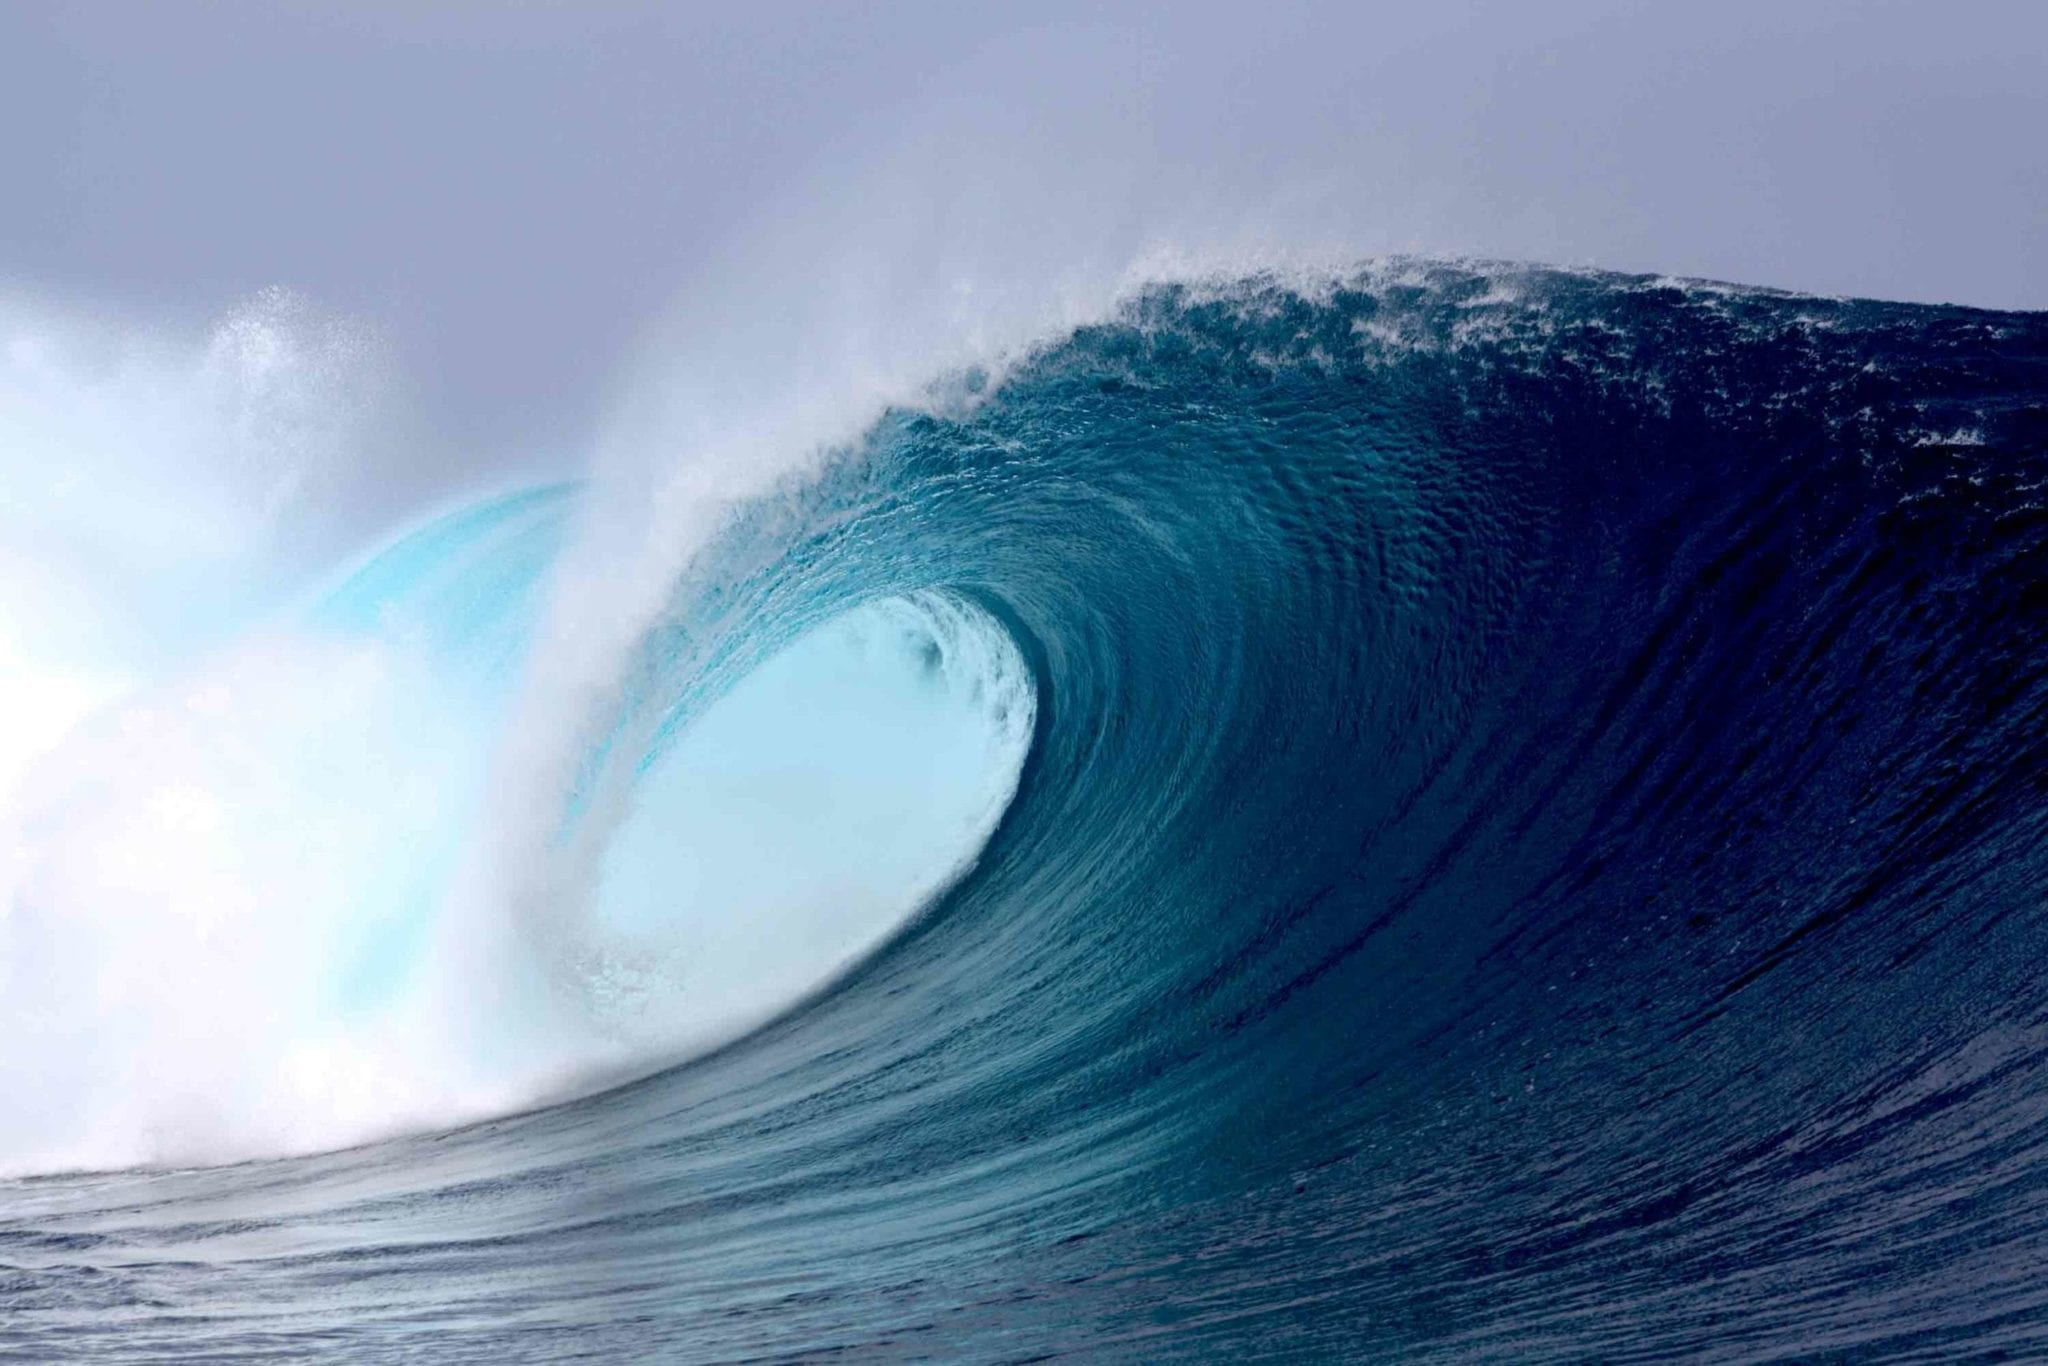 Product to Market: The Wave Analogy